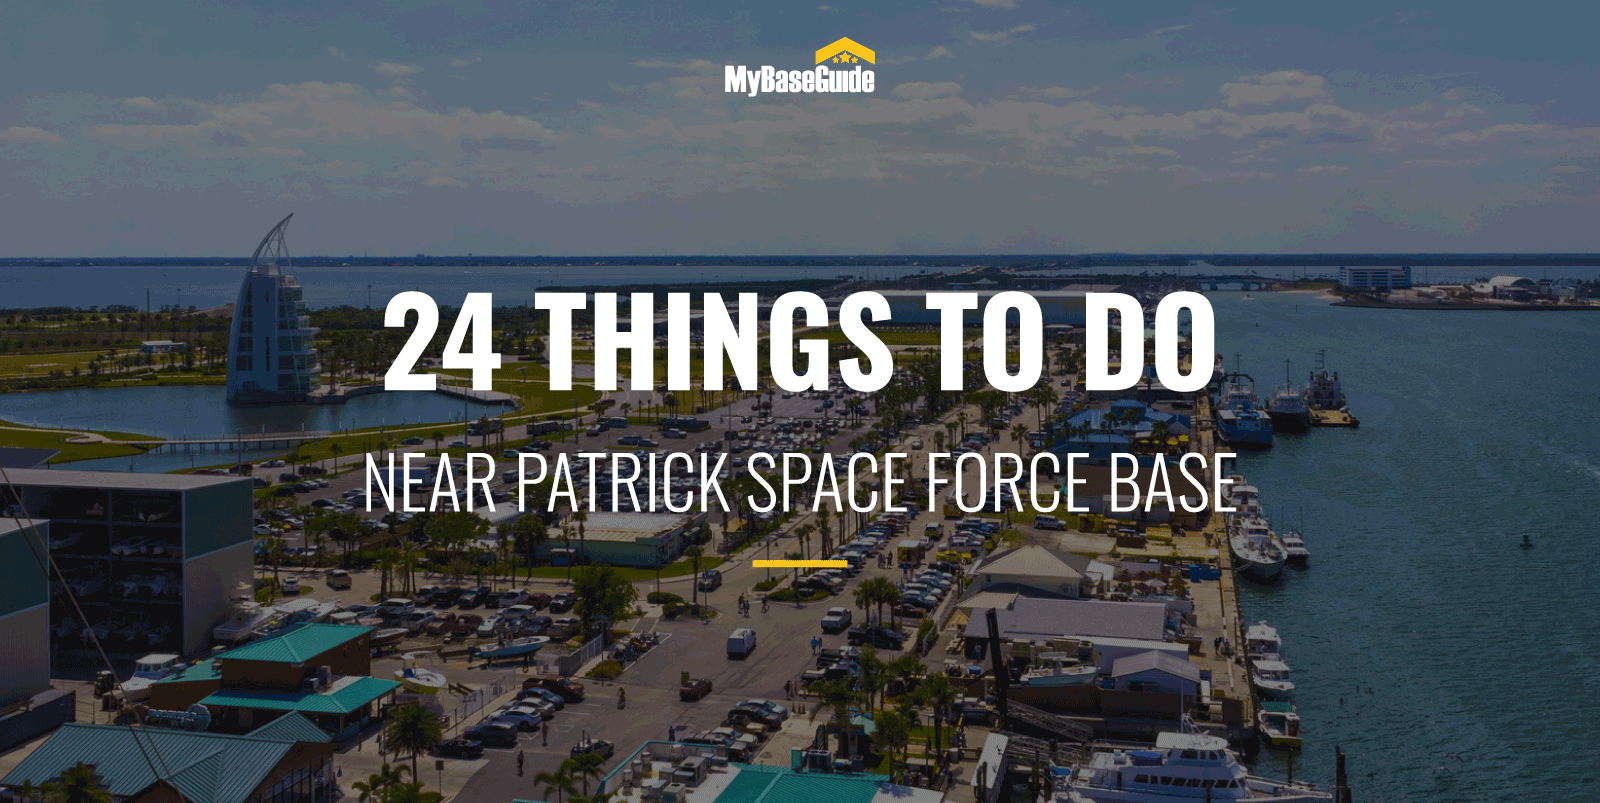 24 Things to Do Near Patrick AFB (Now Patrick Space Force Base)